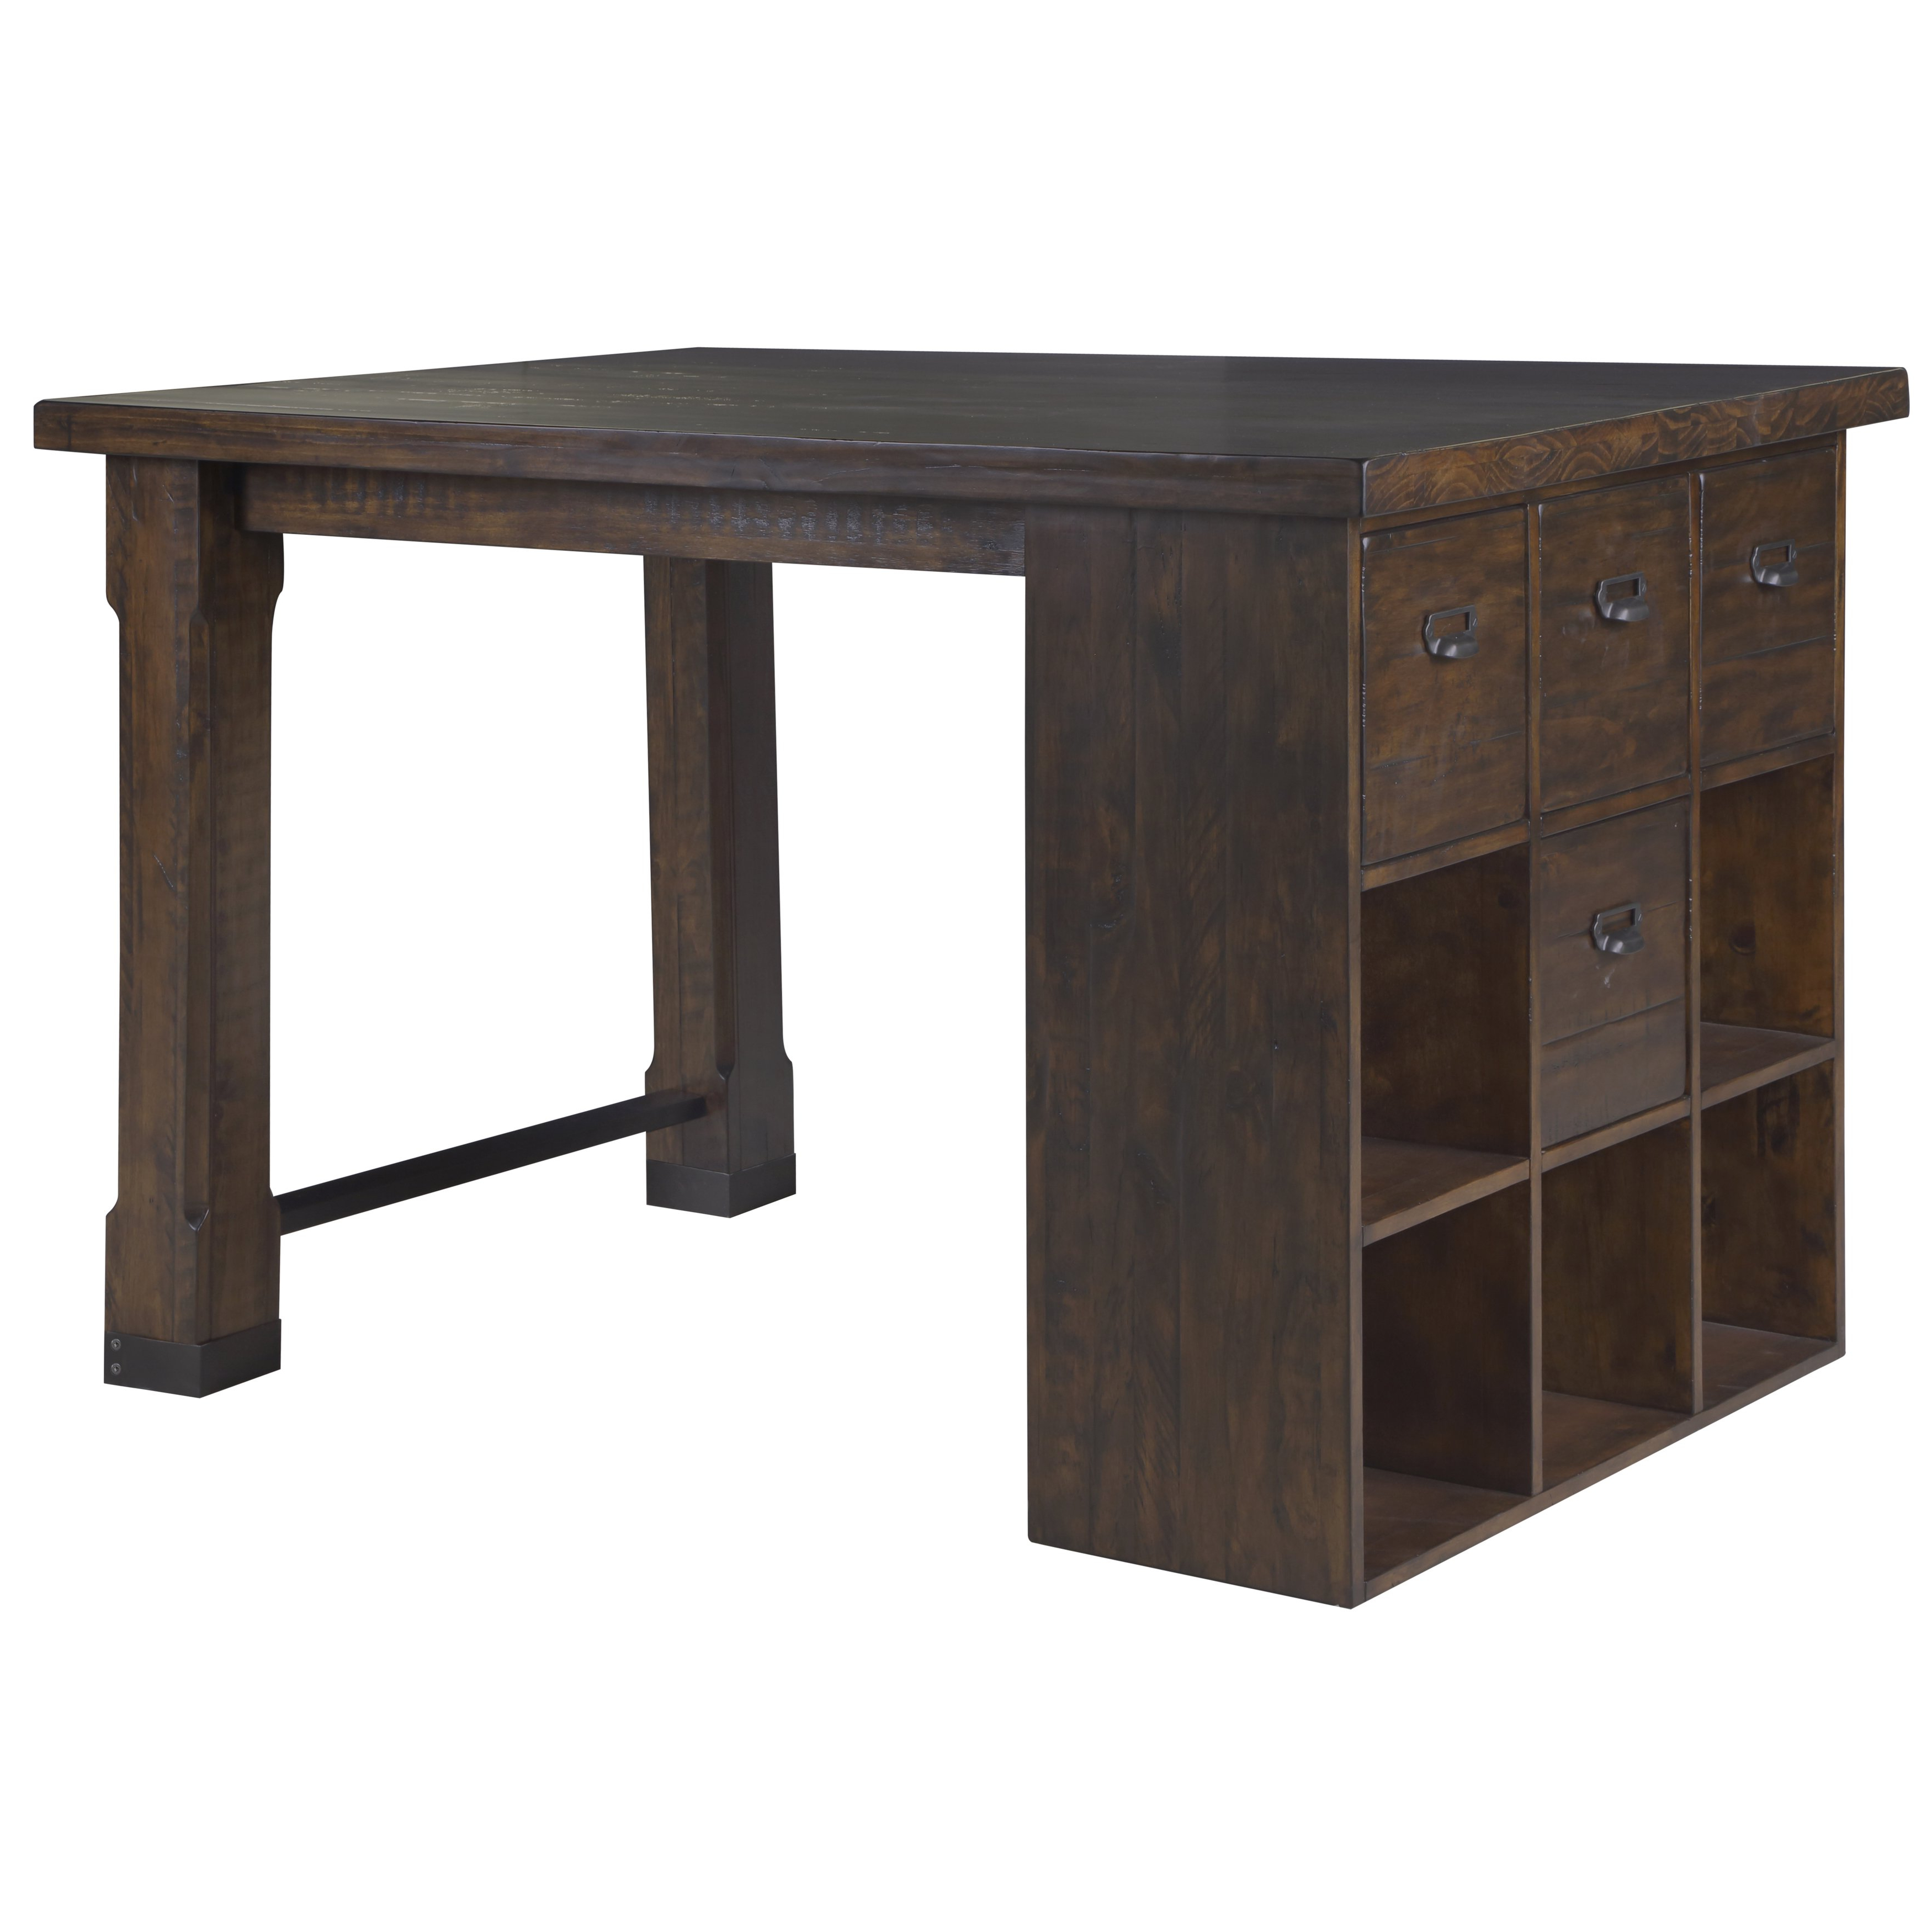 Shop Silver Orchid Bowers Asymmetrical Counter Height Desk With Cube For Preferred Bale Rustic Grey Round Cocktail Tables With Storage (Gallery 14 of 20)